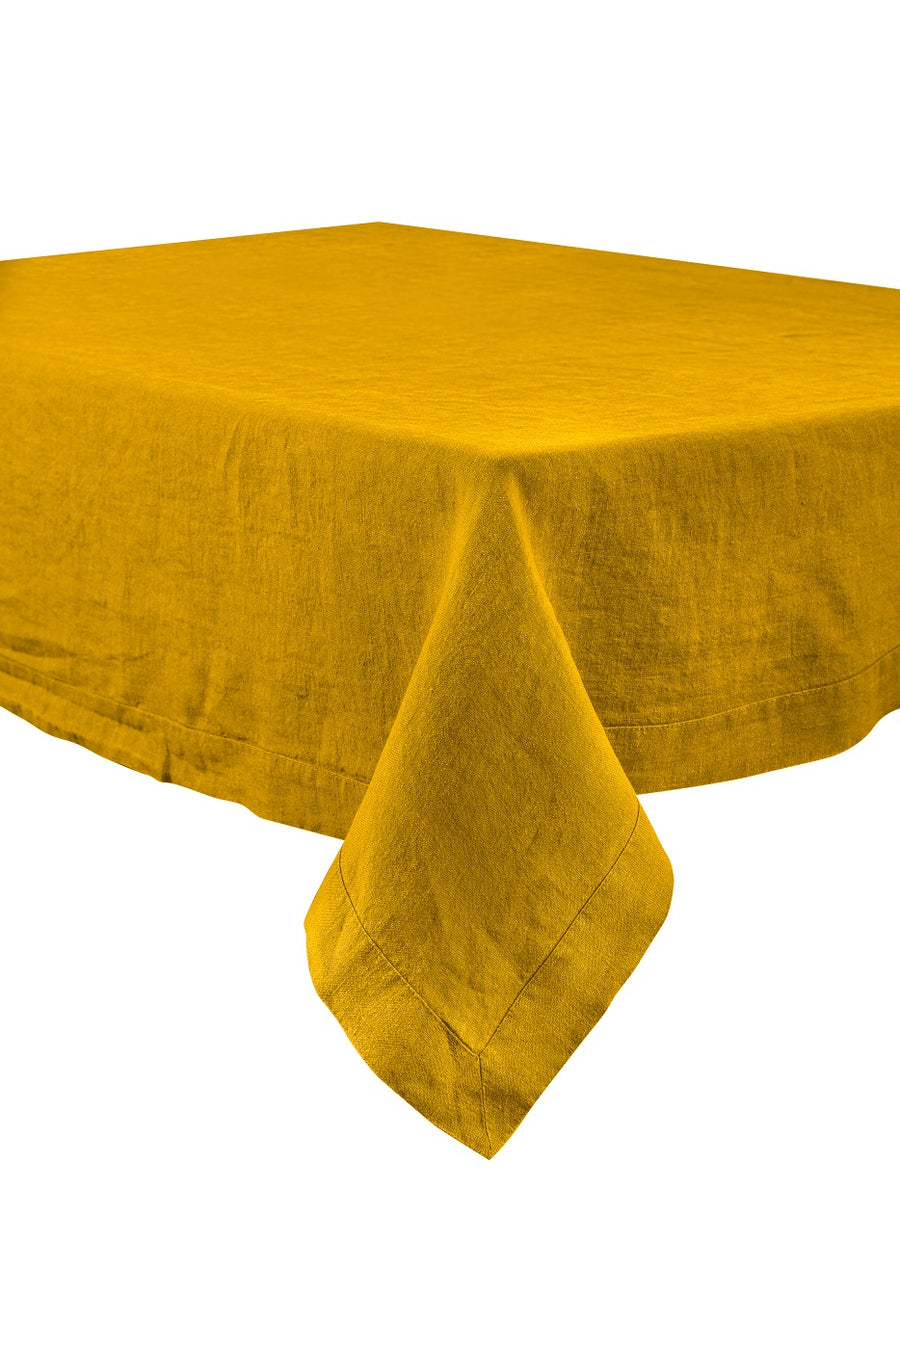 Harmony - Serviette de table en lin Nais